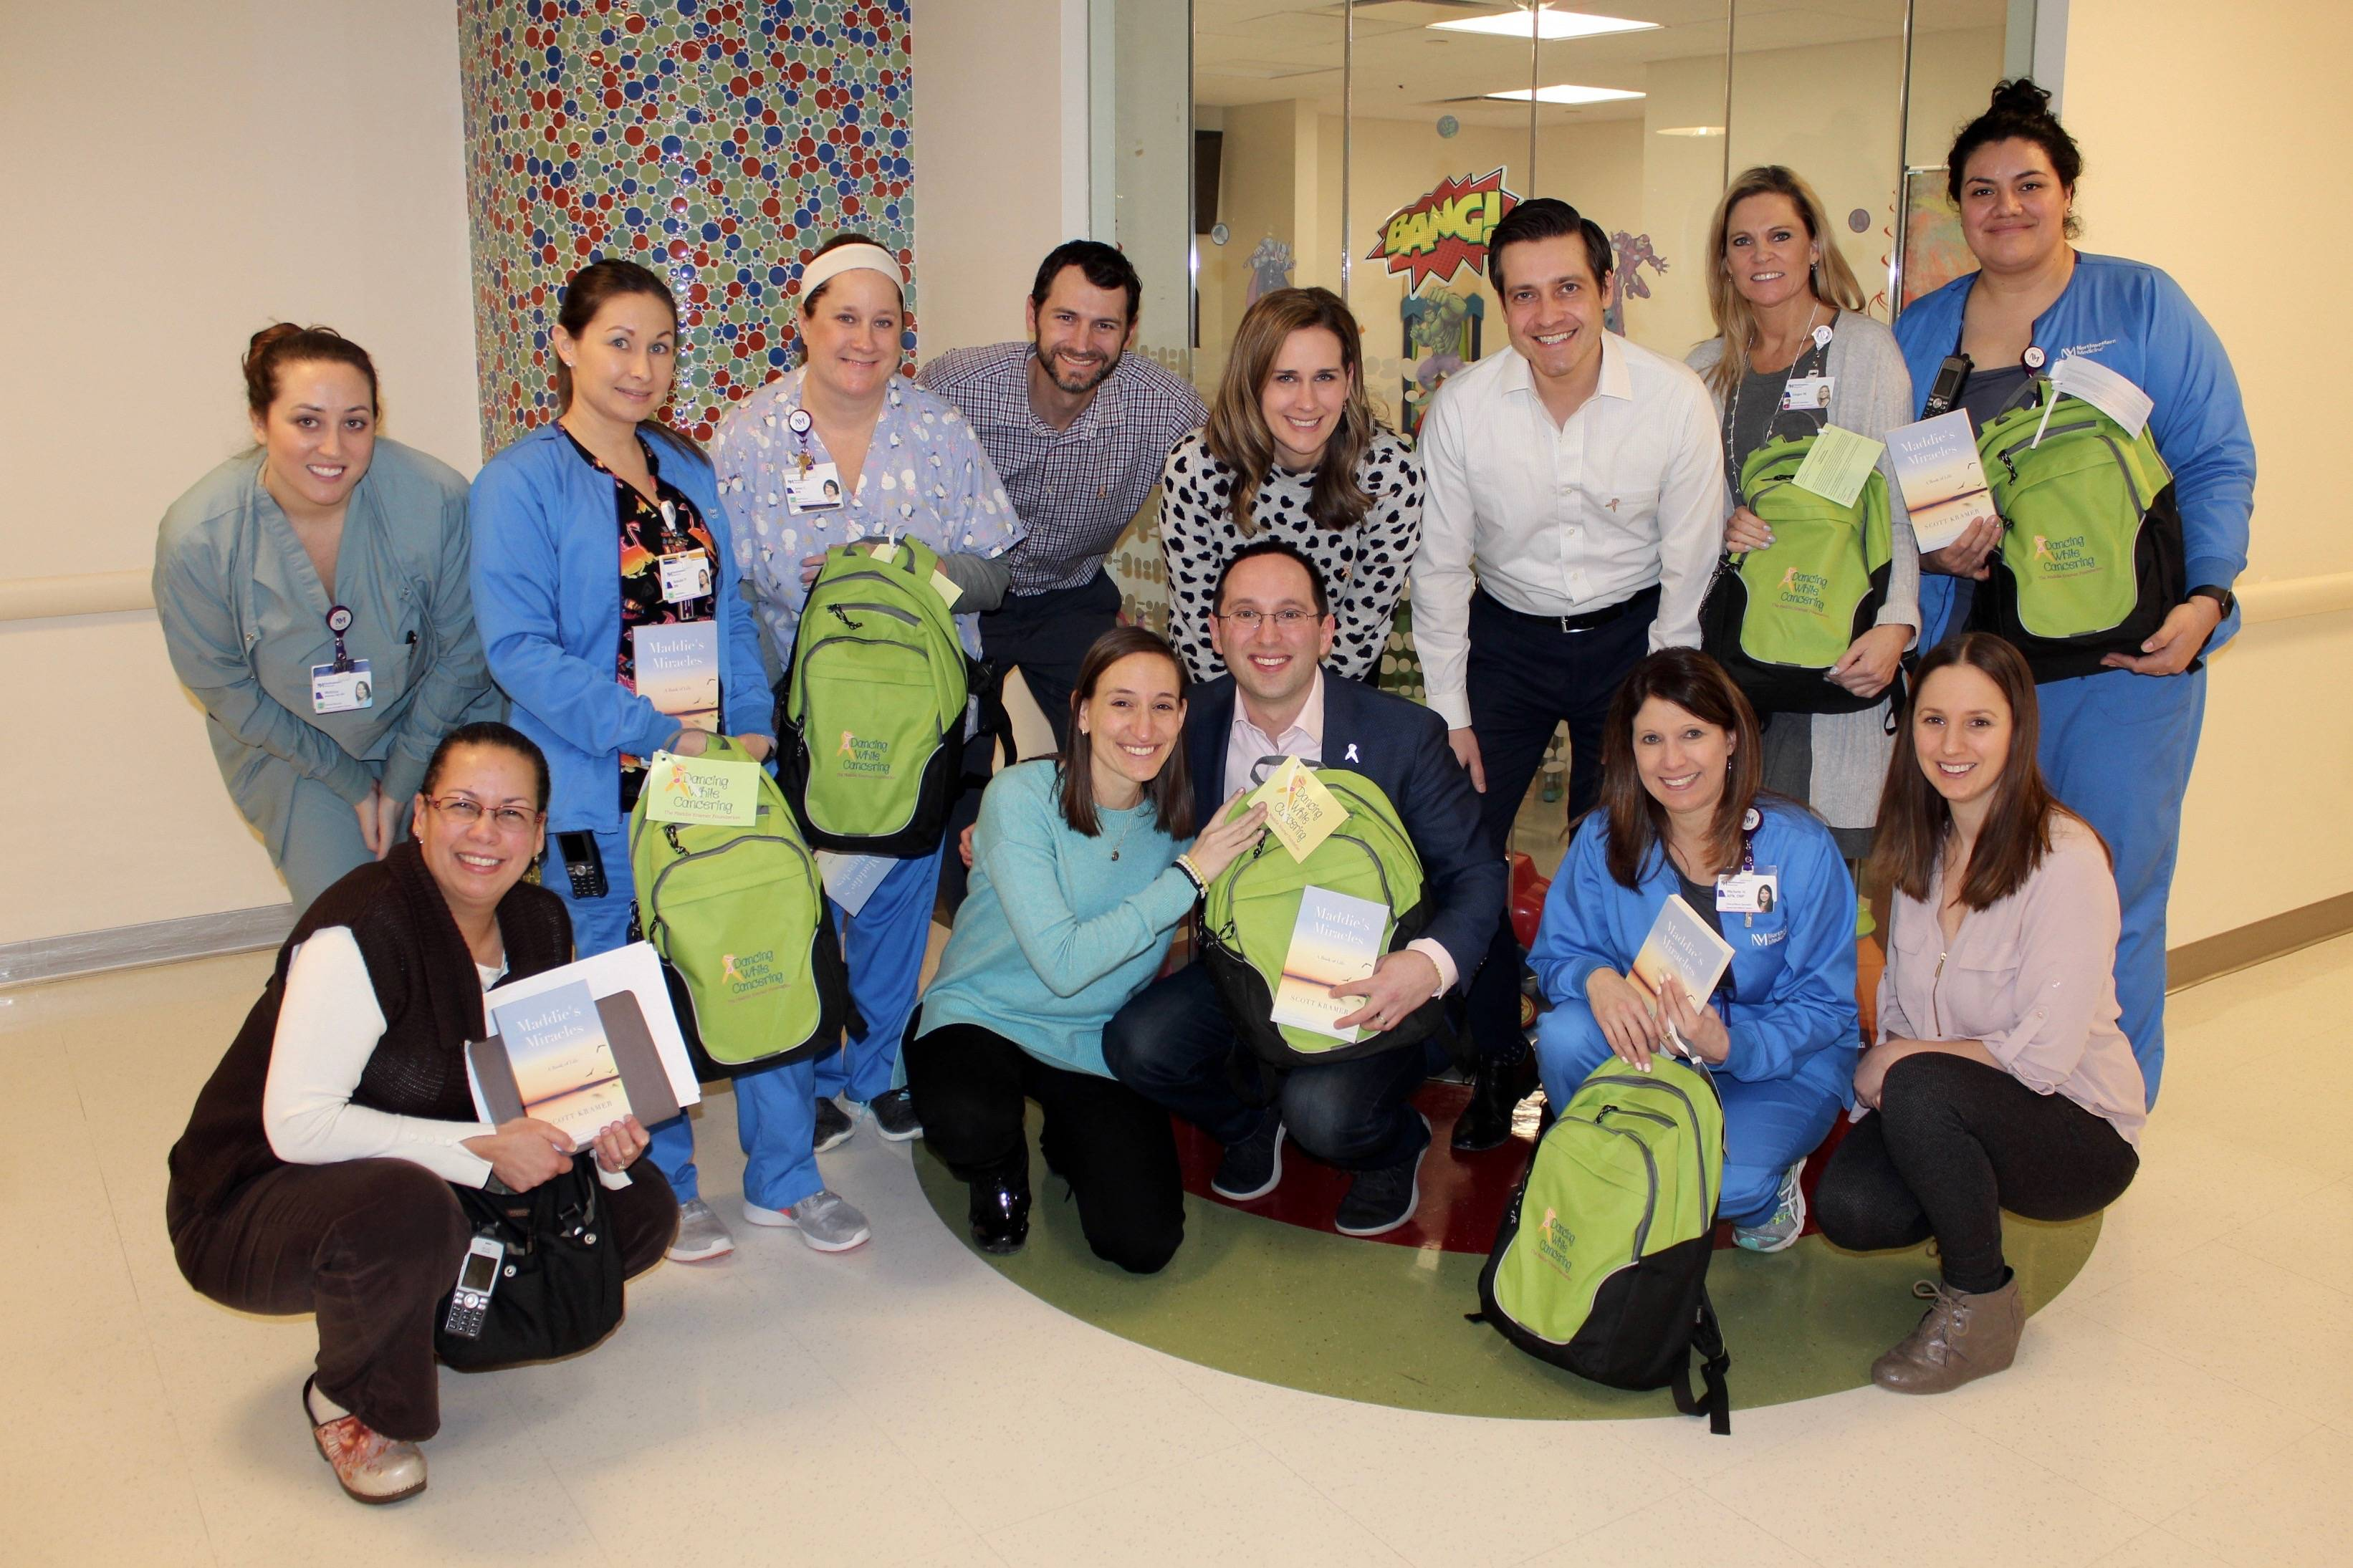 Scott and Pammy Kramer, center, donate Smile Packs to children at partner hospitals, including Lurie Children's at Northwestern Medicine Central DuPage Hospital in Winfield, Illinois, where pediatric hematologists/oncologists diagnose and treat children with blood diseases and cancer.